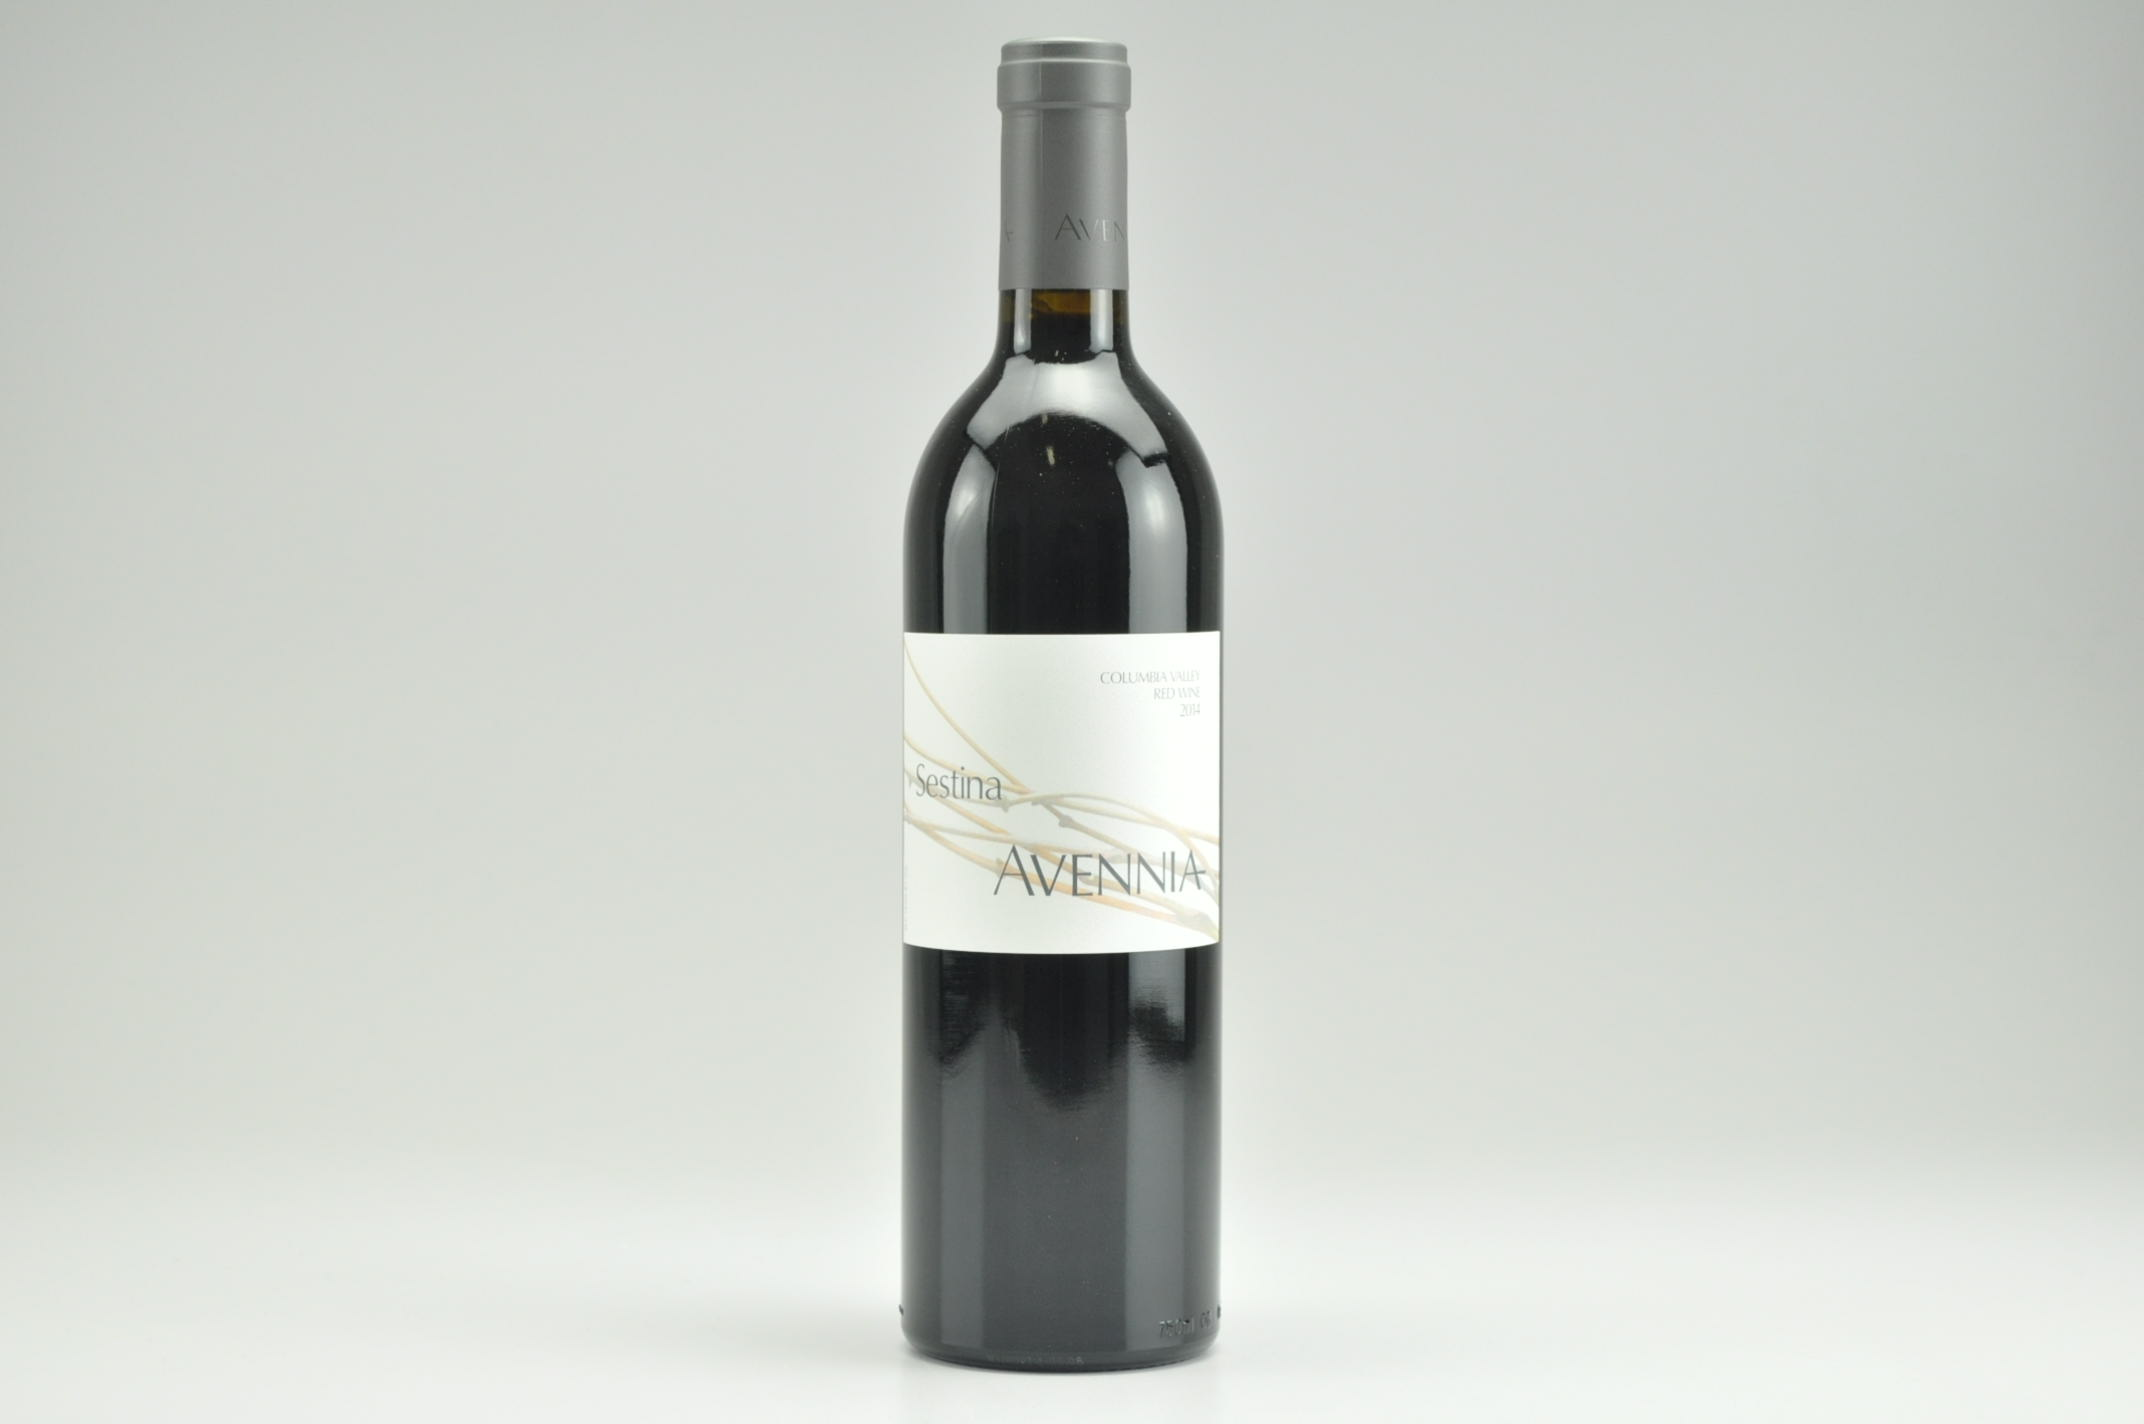 2014 Avennia Sestina Red Wine, Columbia Valley RP--95